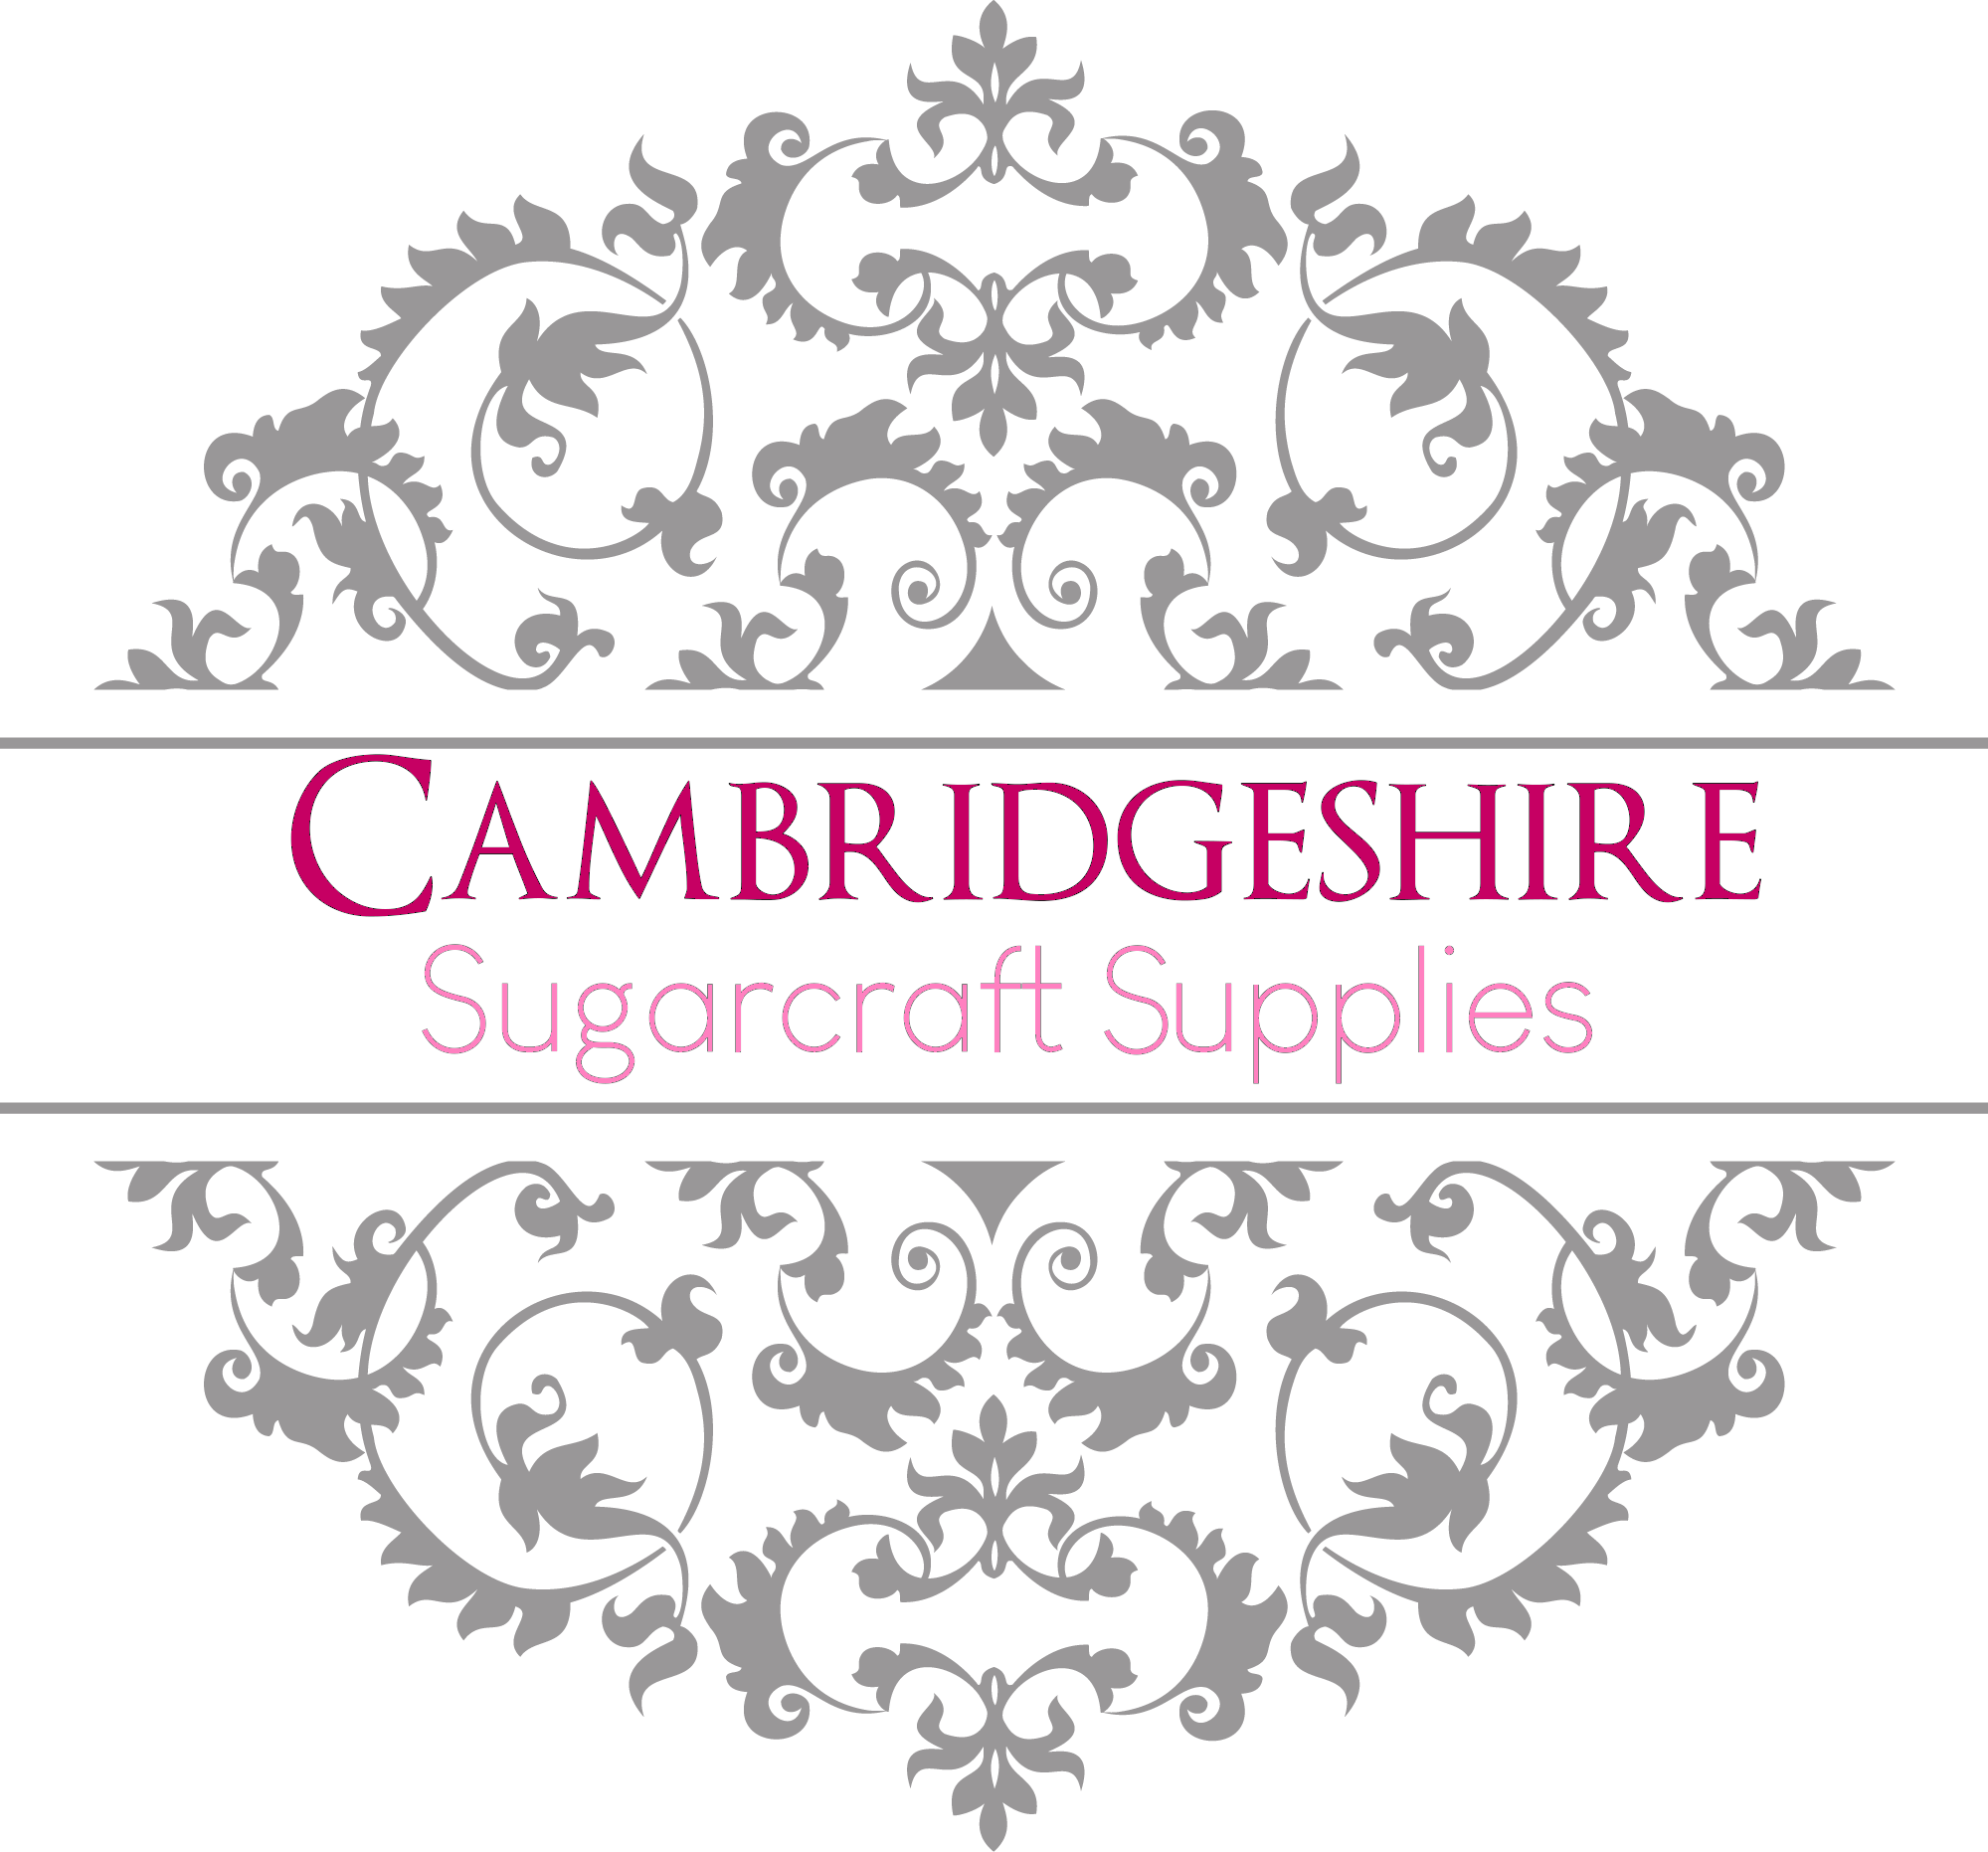 Cambridgeshire Sugarcraft Supplies